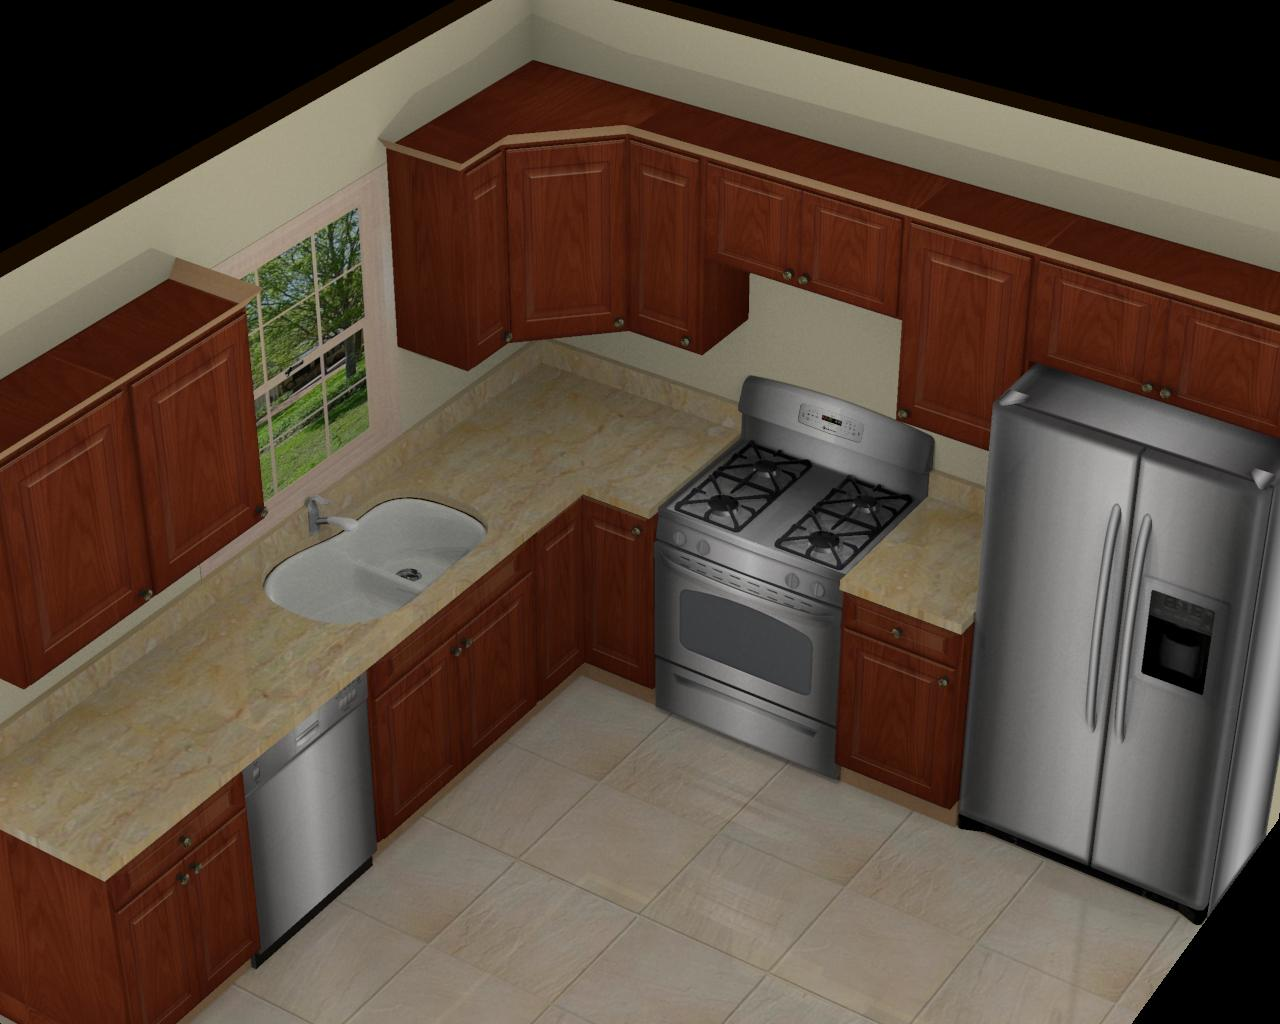 Foundation dezin decor 3d kitchen model design for Model kitchen images